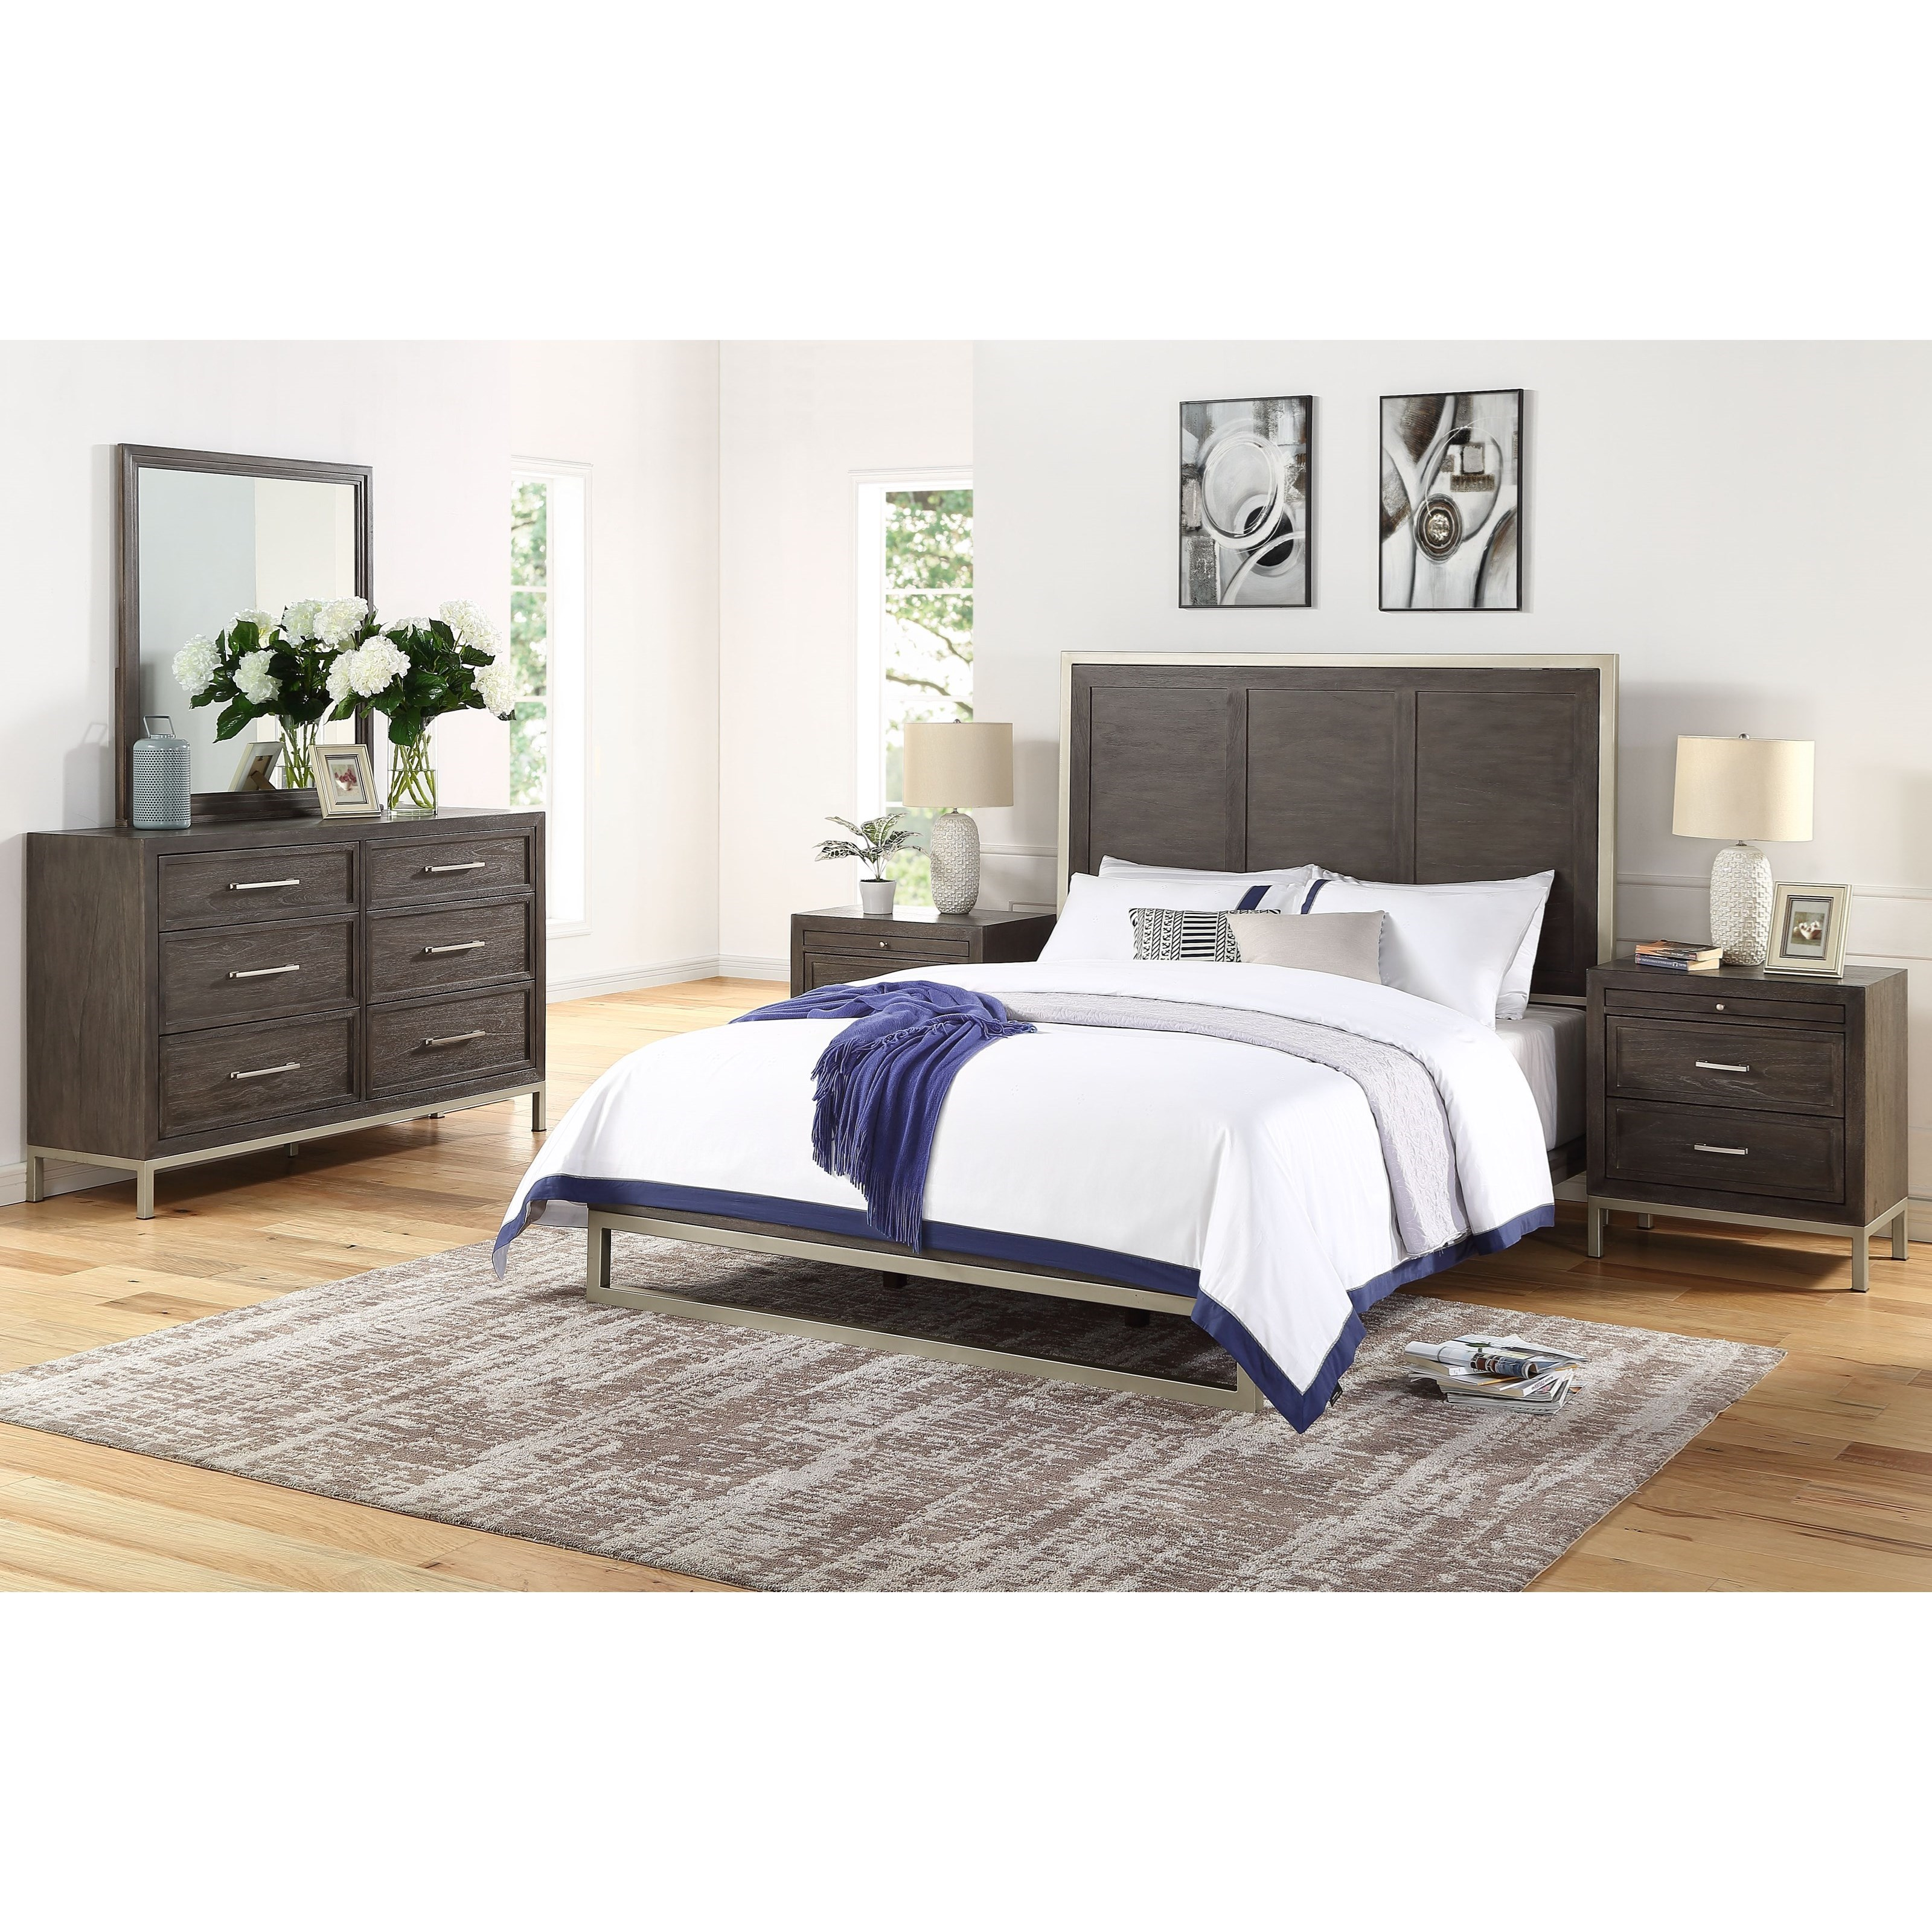 Broomfield King Bedroom Group by Star at EFO Furniture Outlet